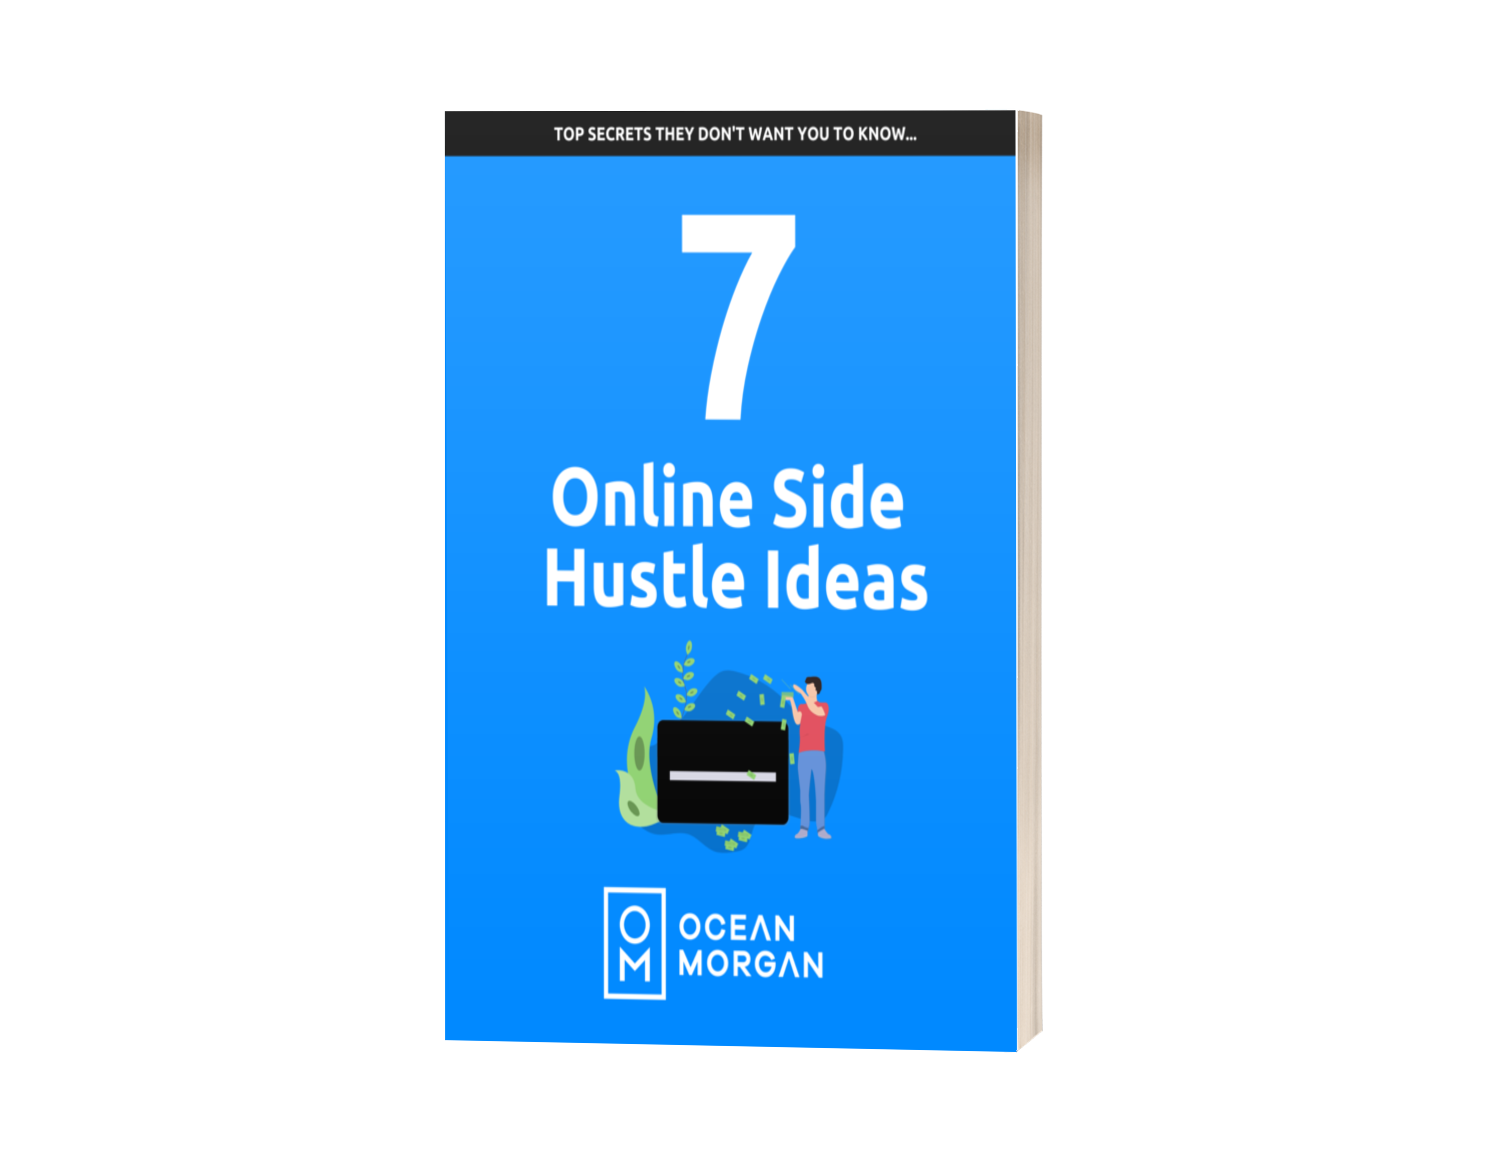 7 Online Side Hustle Ideas - Ocean Morgan